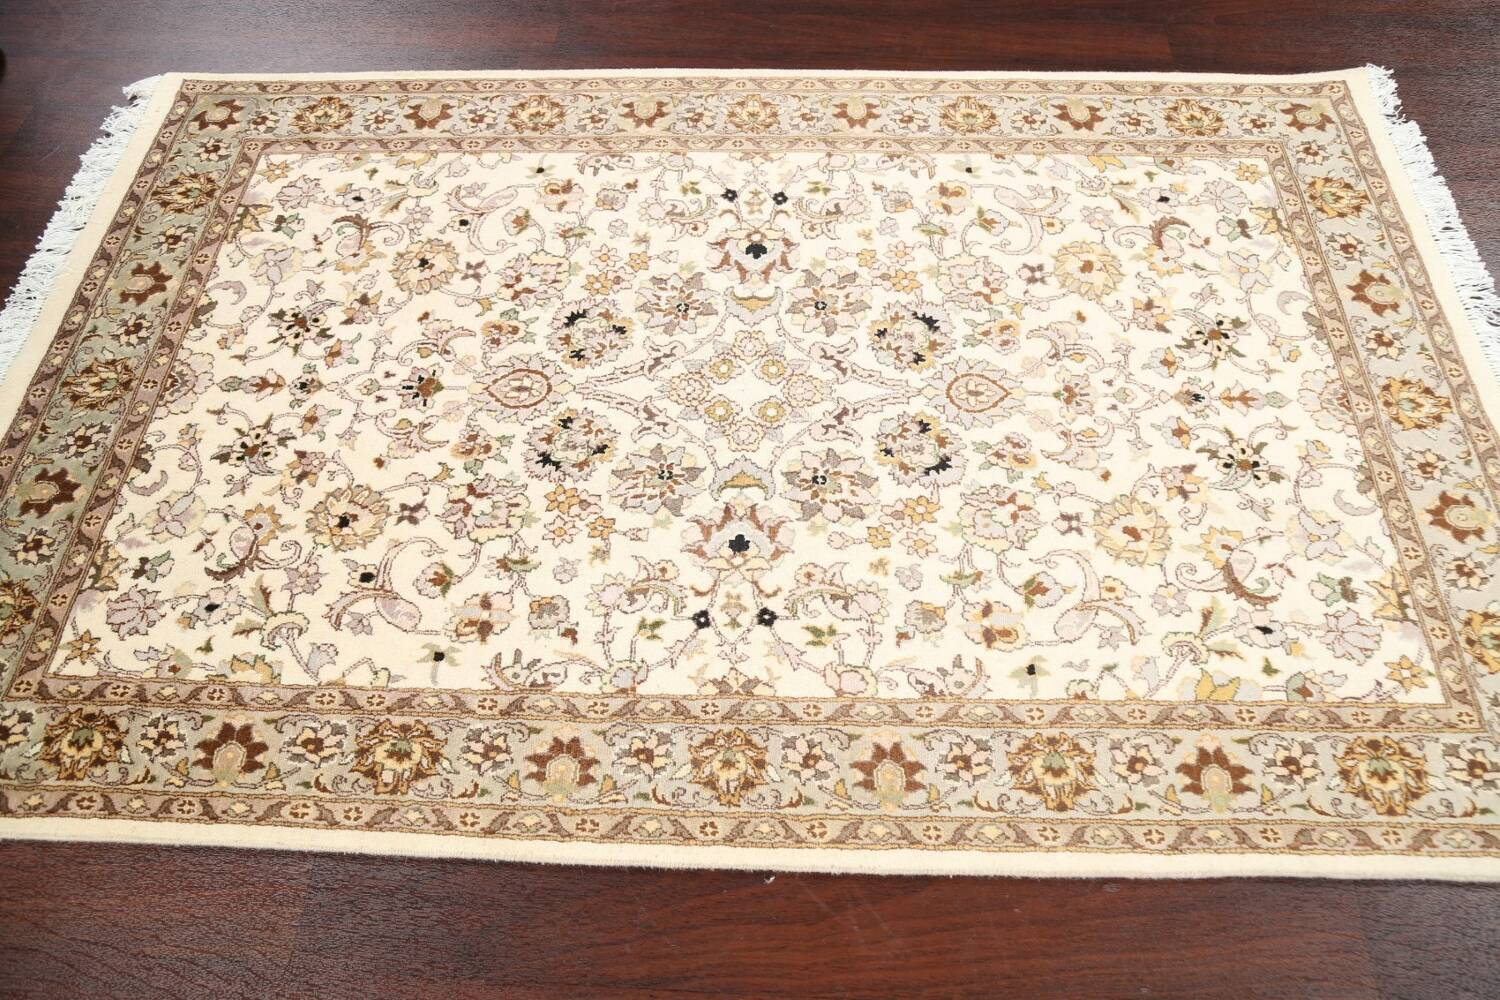 100% Vegetable Dye Floral Tabriz Oriental Area Rug 4x6 image 11